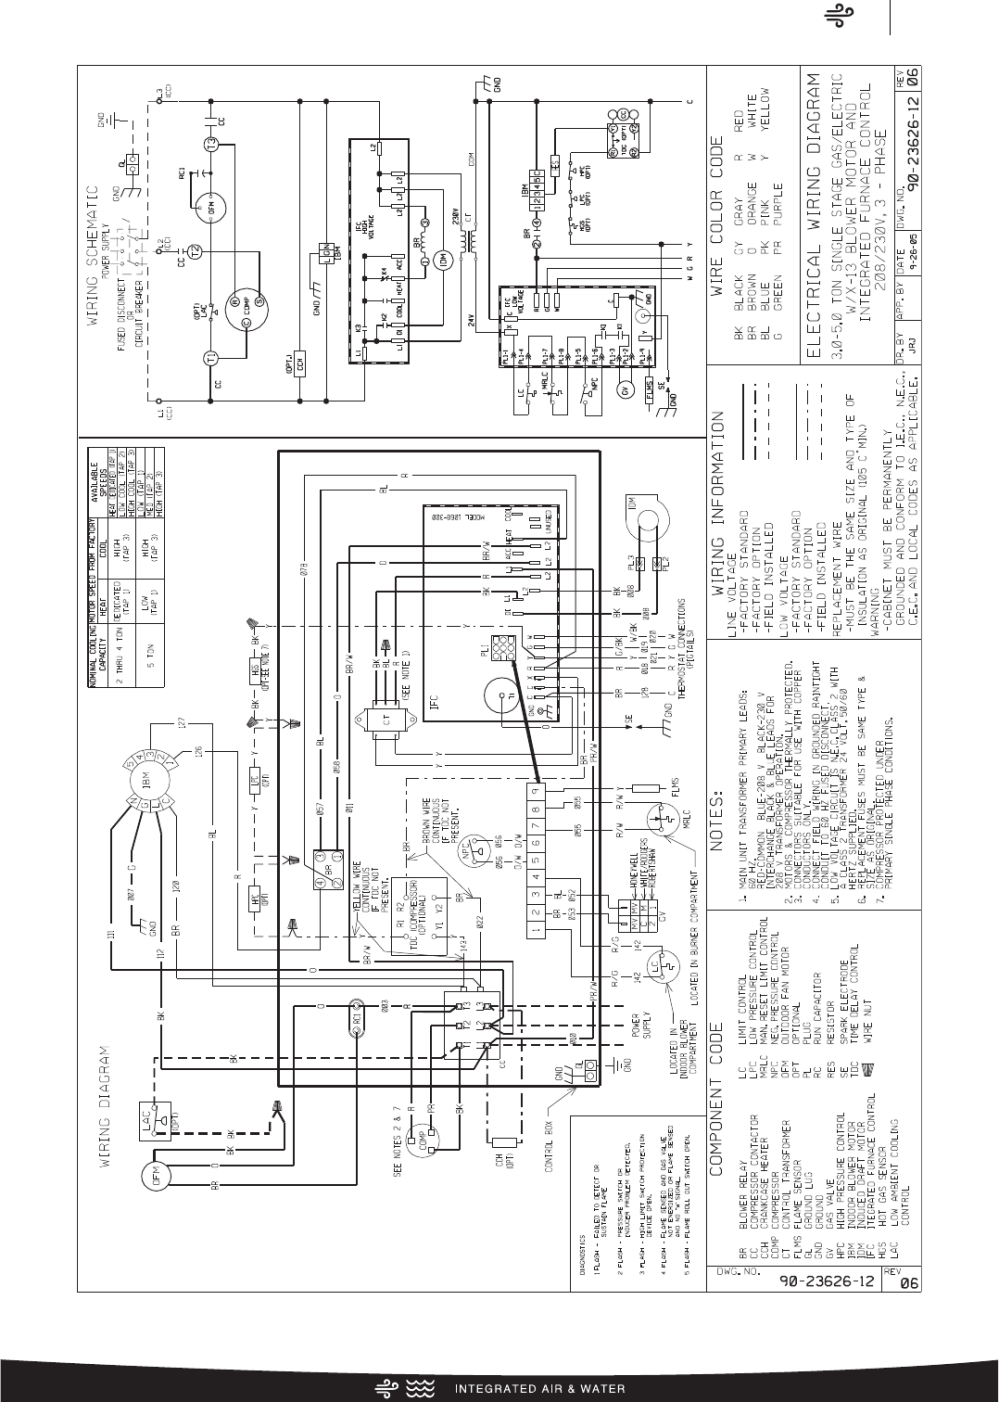 medium resolution of urgg rheem wiring diagrams wiring library rh 65 yoobi de ruud urgg series manual urgg ruud 07e30jkr